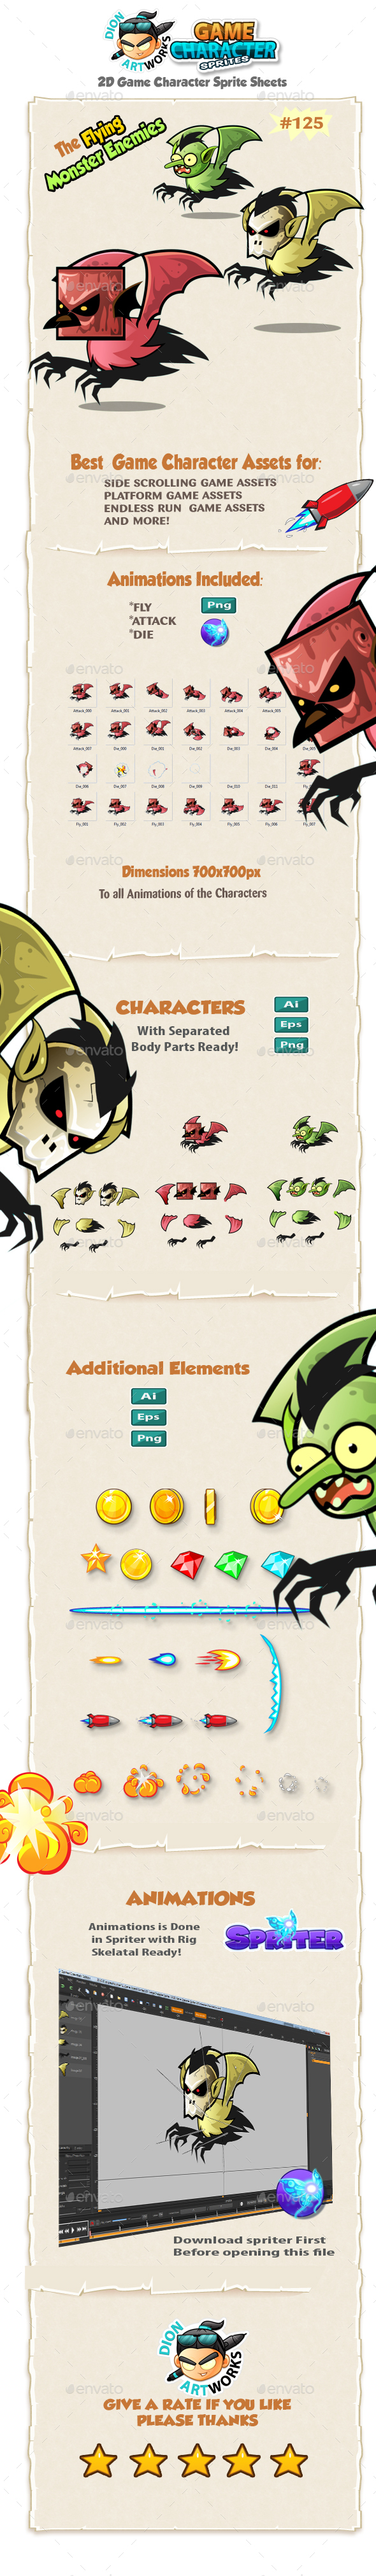 Flying Monster Enemies 2D Game Character Sprites 1 - Sprites Game Assets